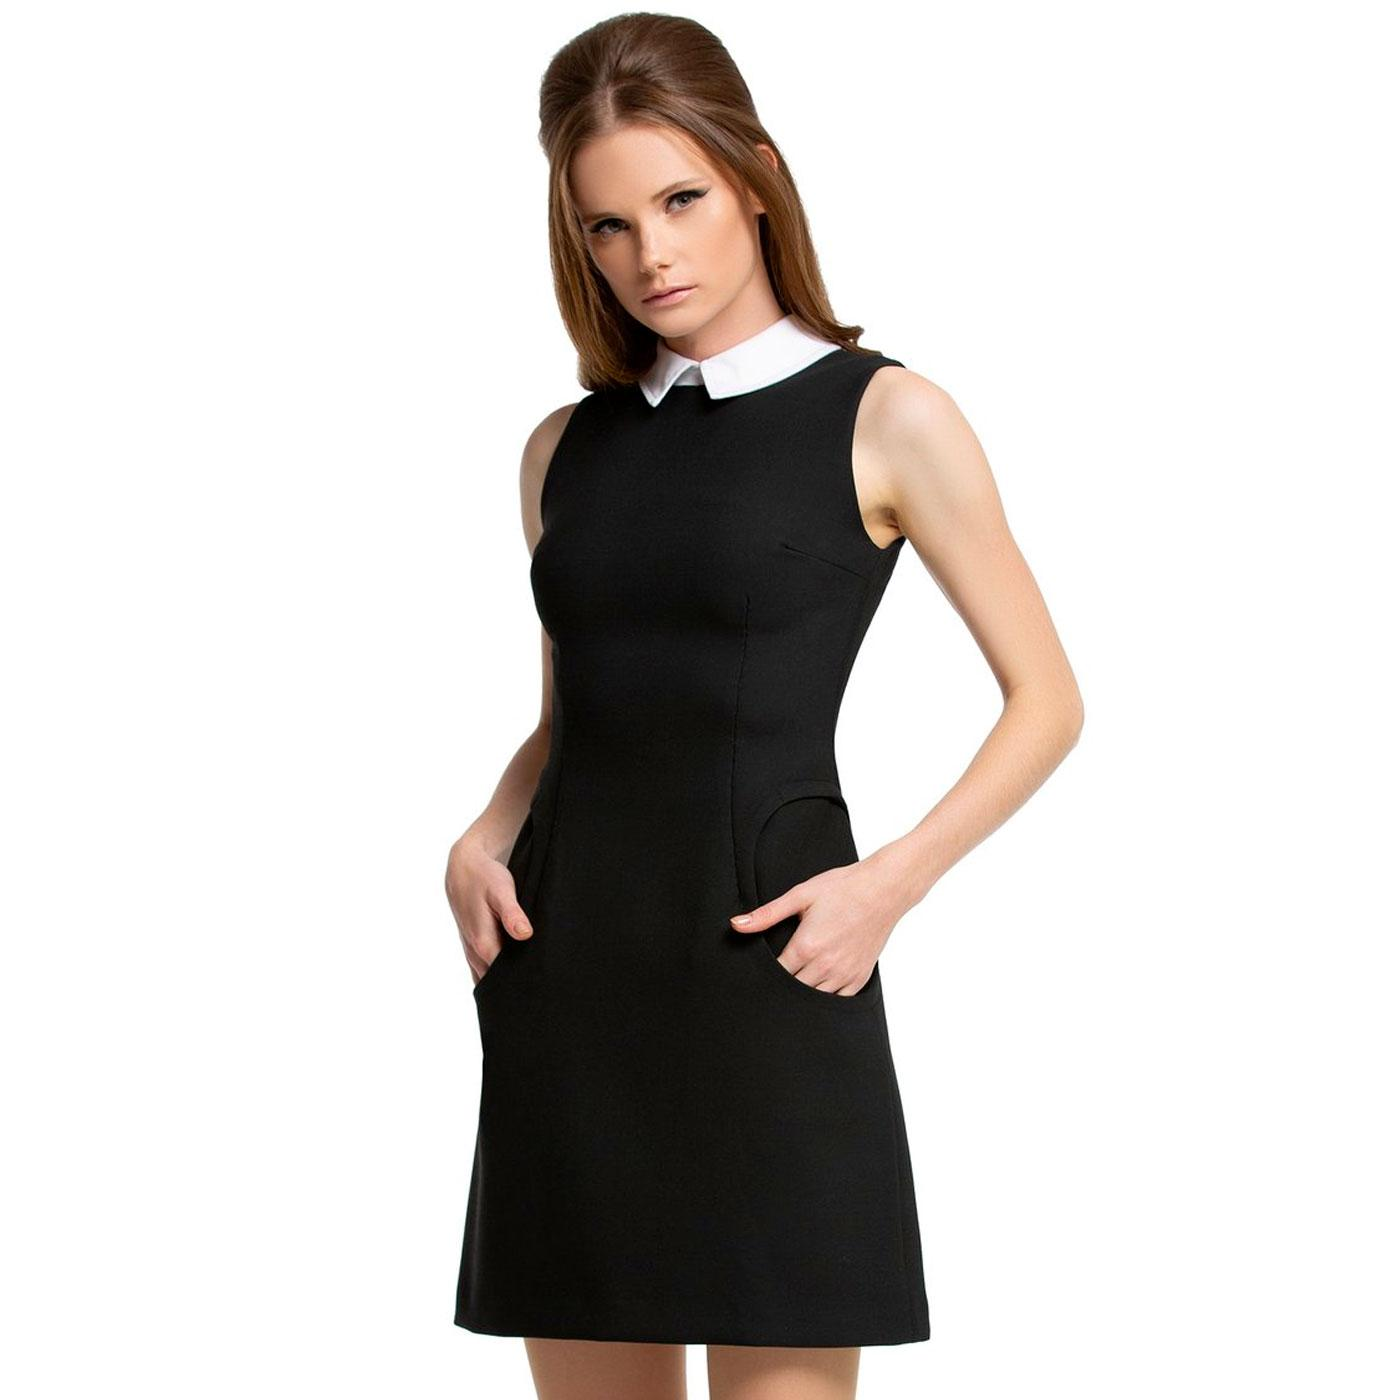 MARMALADE Mod Collared Circle Pocket Dress (Black)